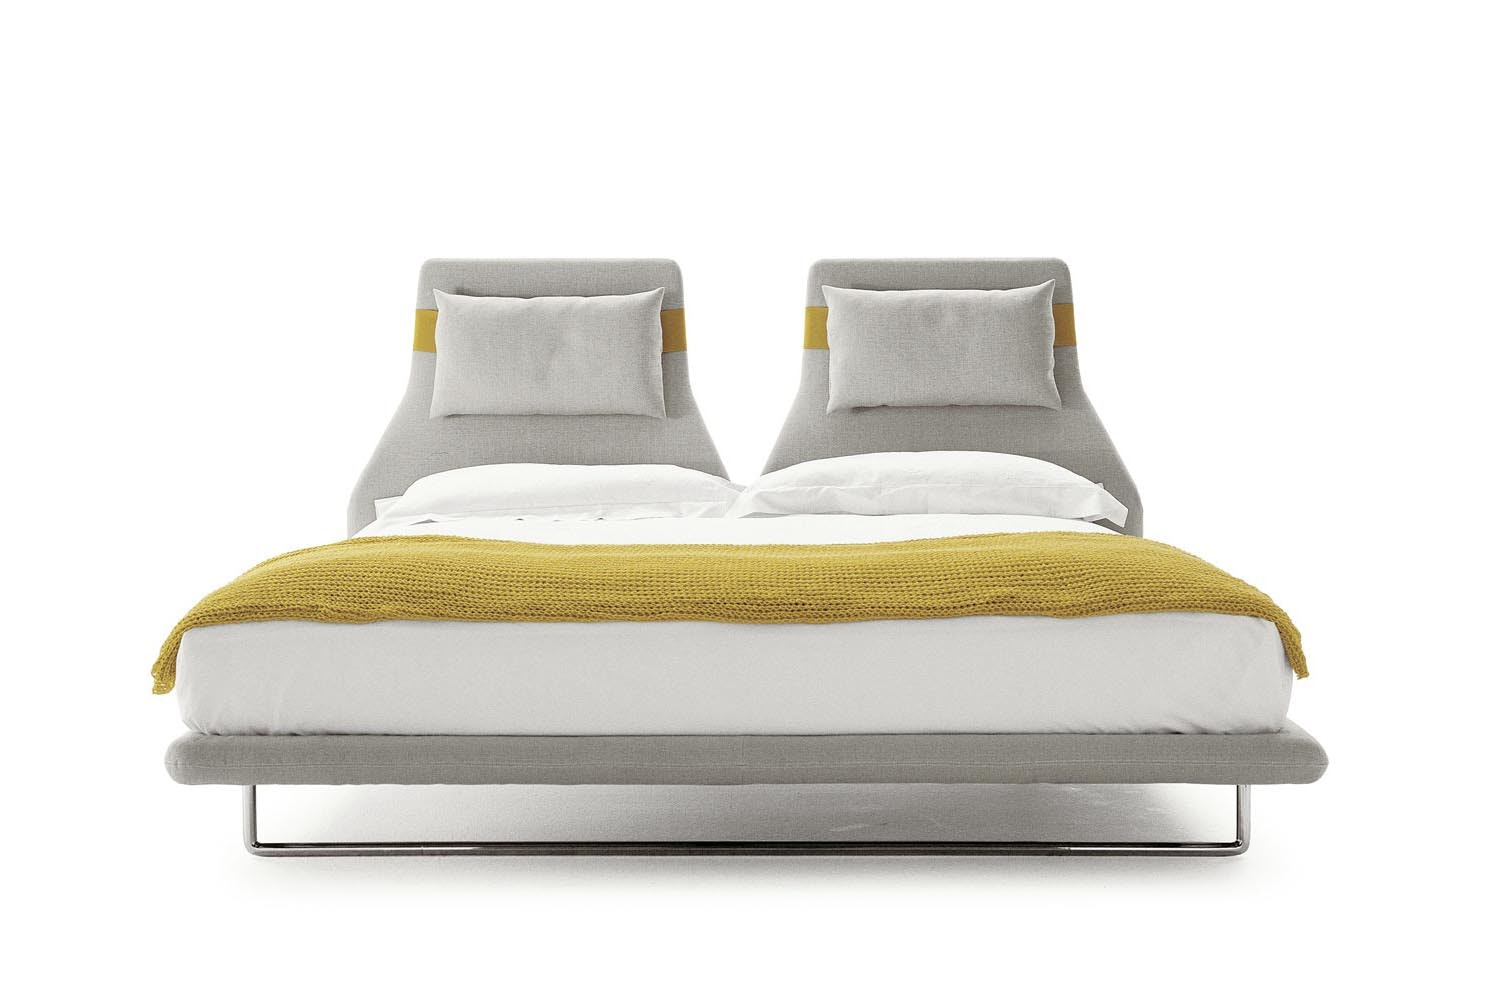 Lazy-Night Bed by Patricia Urquiola for B&B Italia